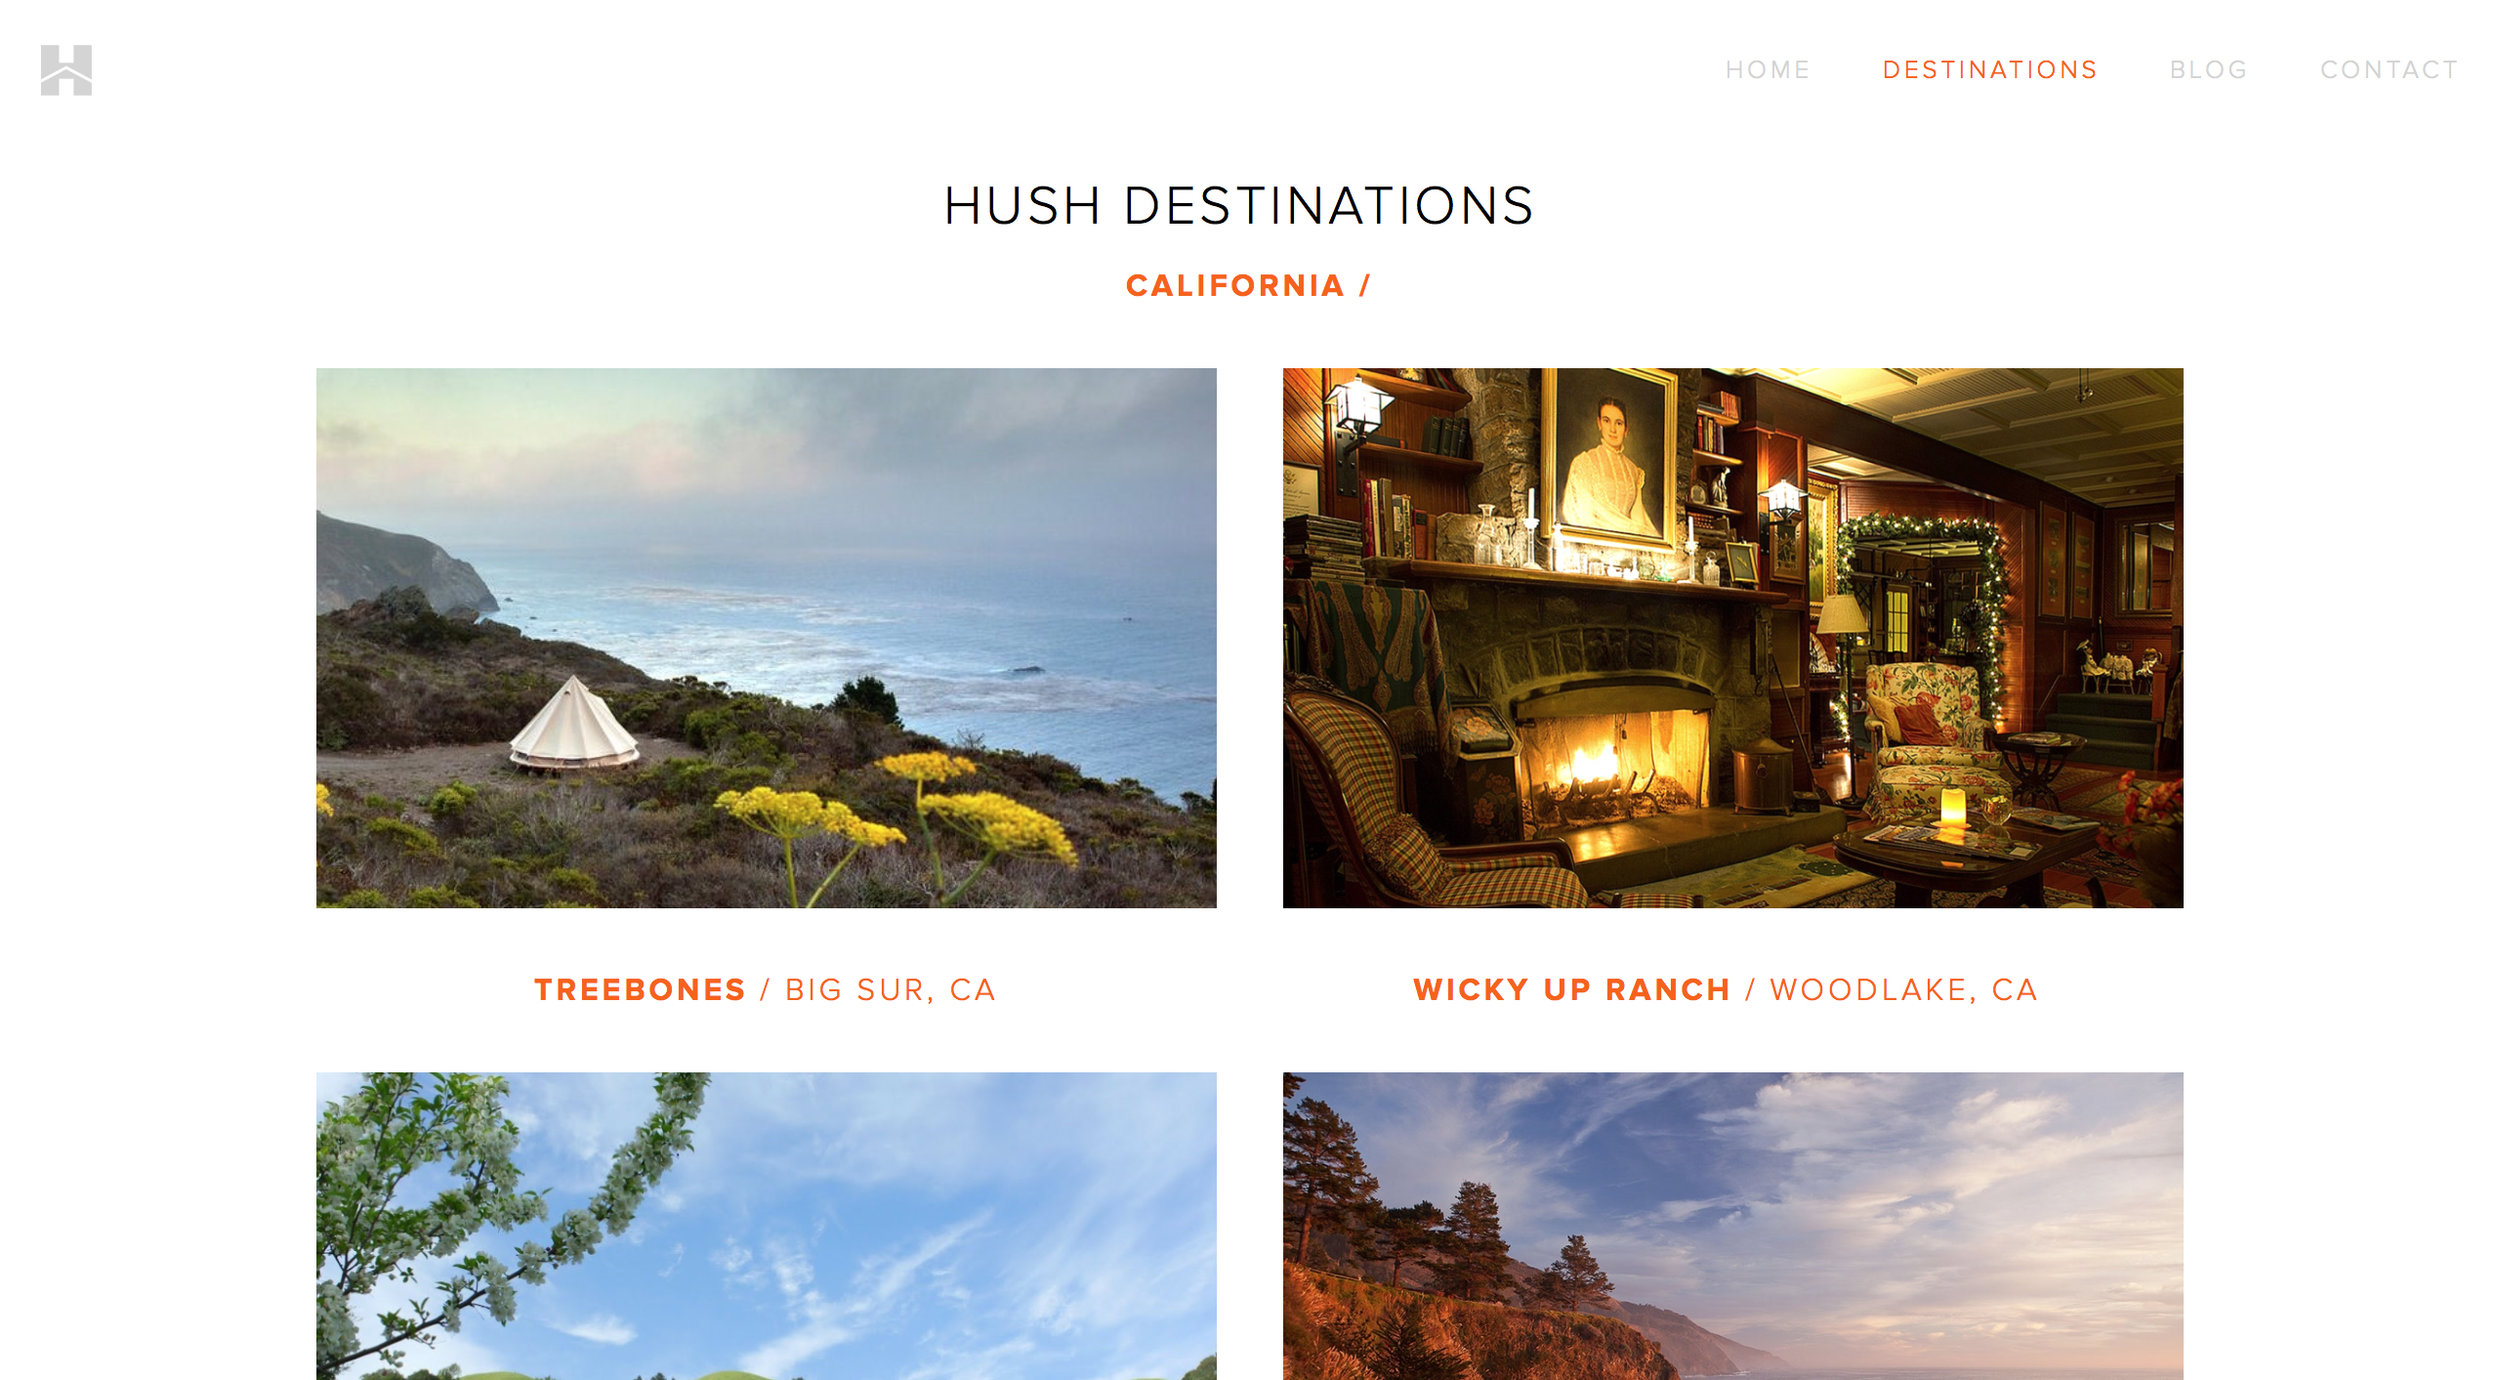 HUSH_0002_DESTINATIONS.jpg